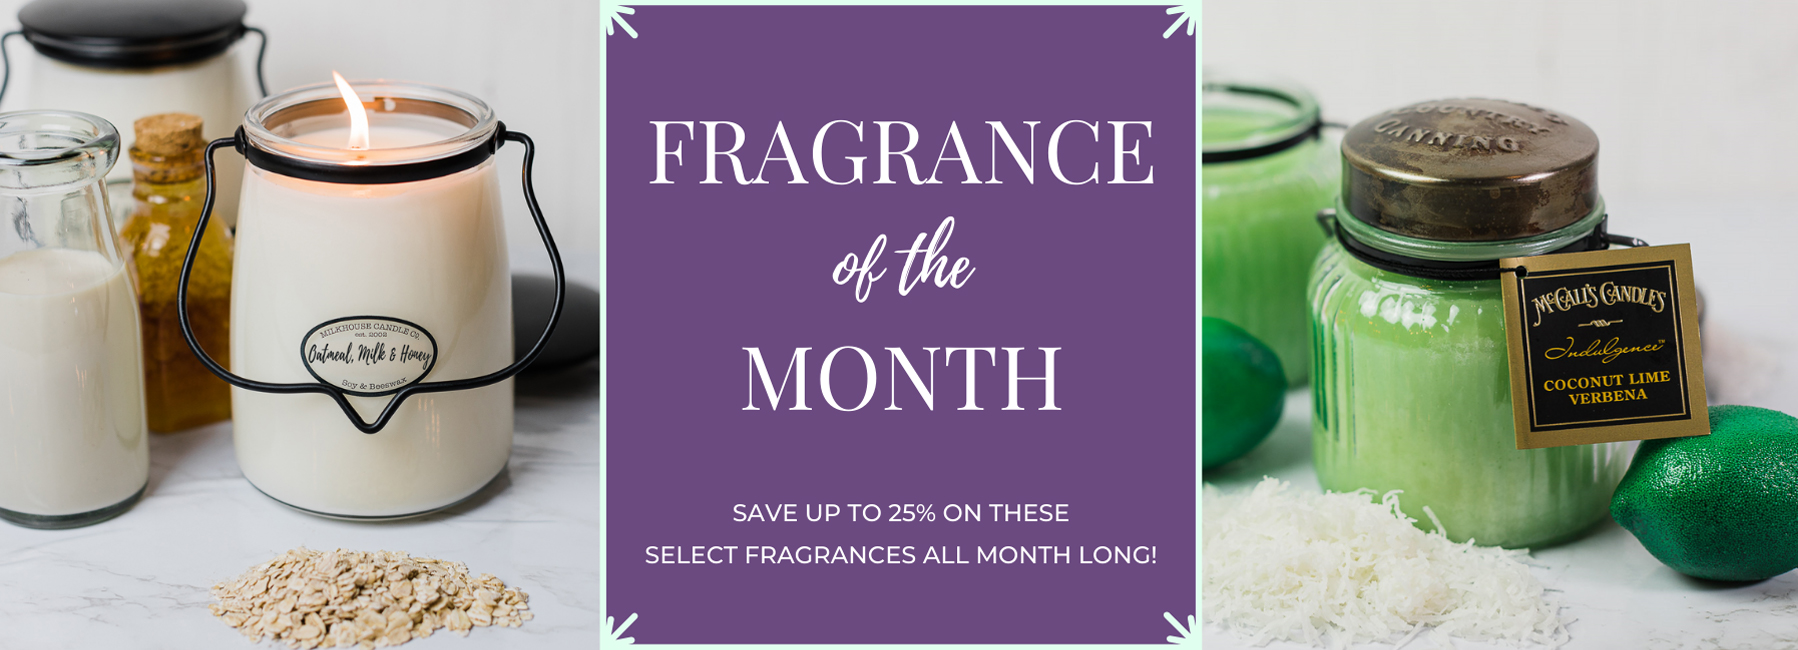 Fragrance of the Month Sale